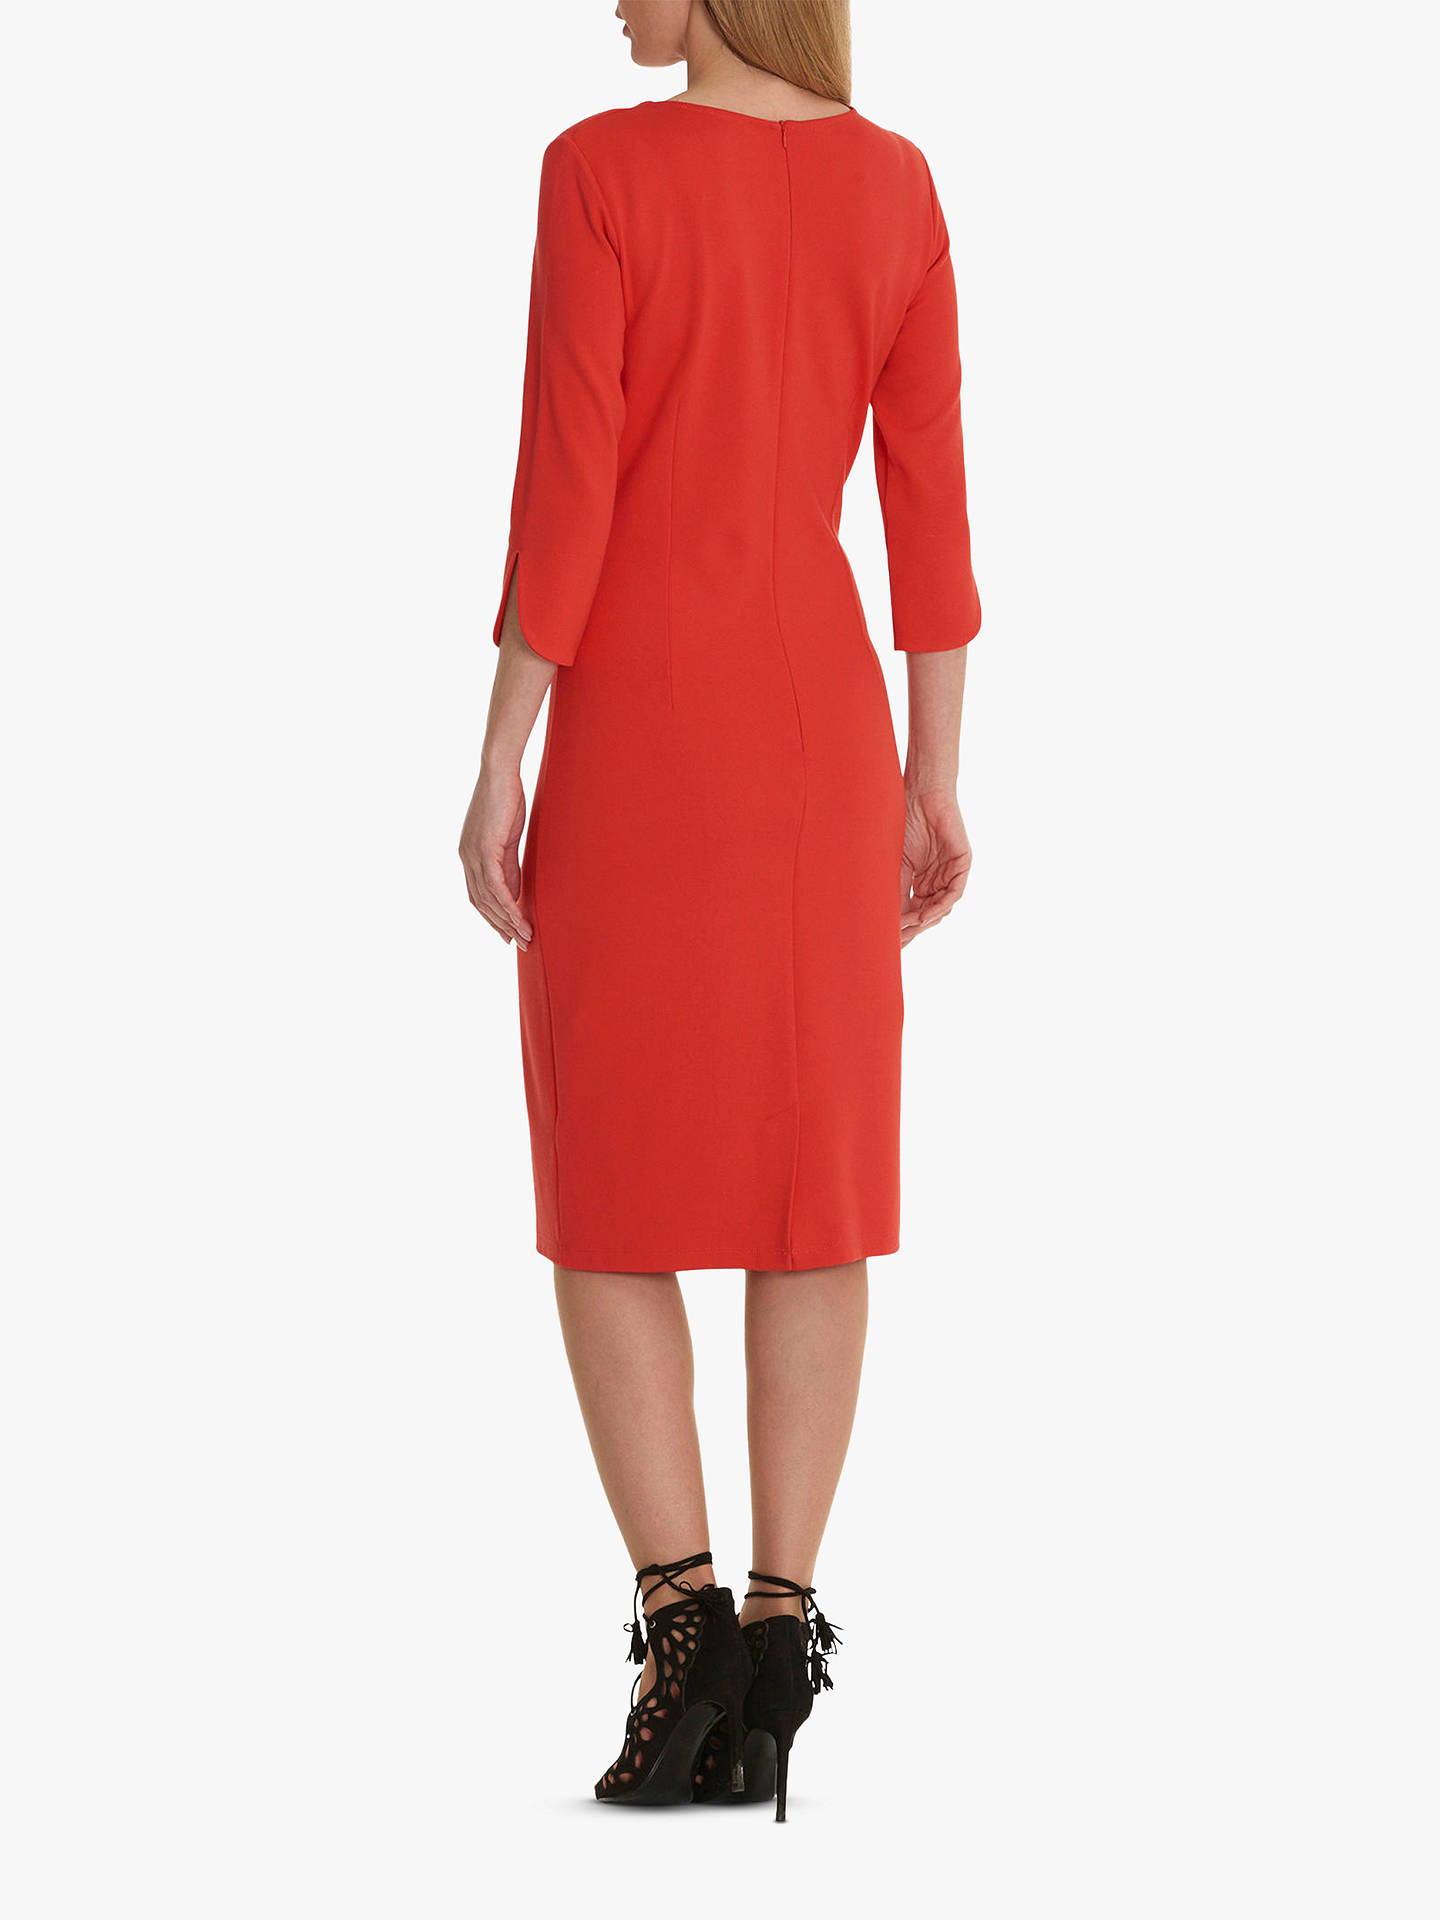 BuyBetty Barclay Keyhole Jersey Dress, Hibiscus Red, 10 Online at johnlewis.com